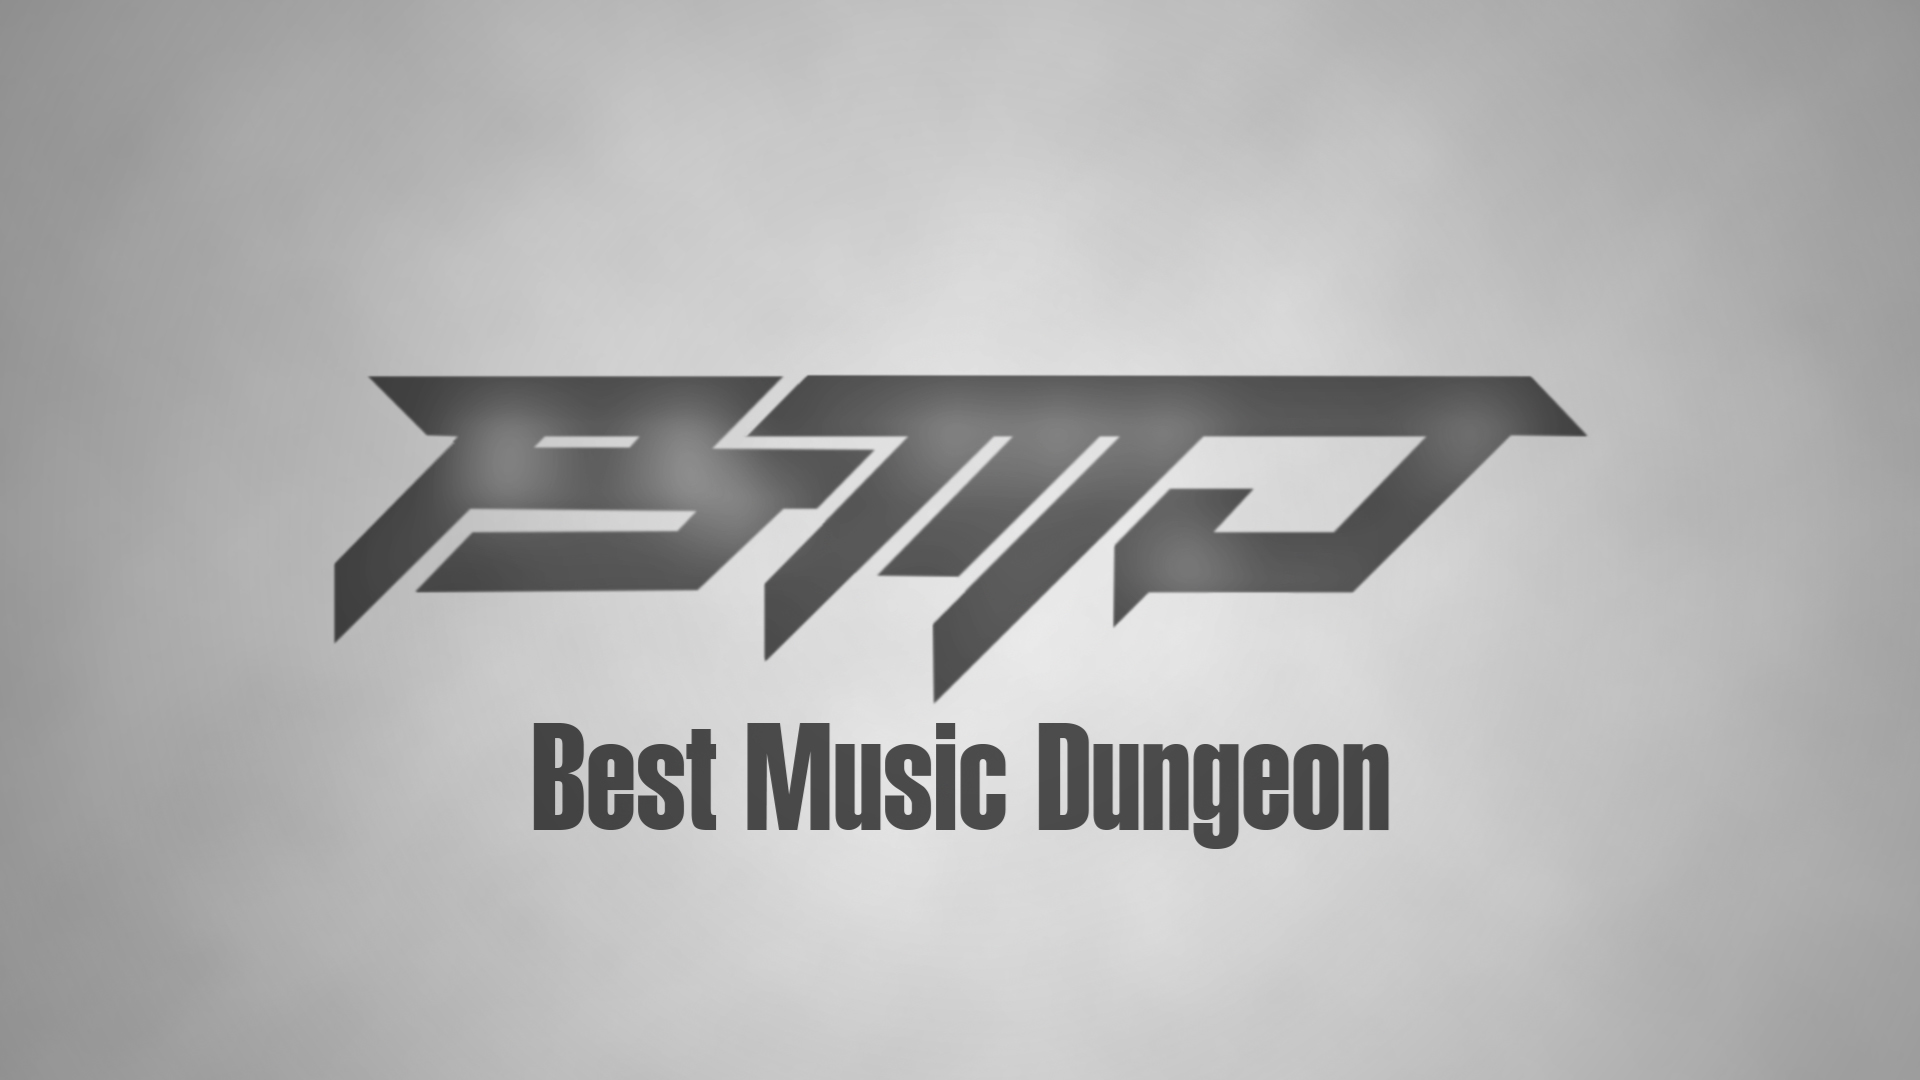 Best Music Dungeon